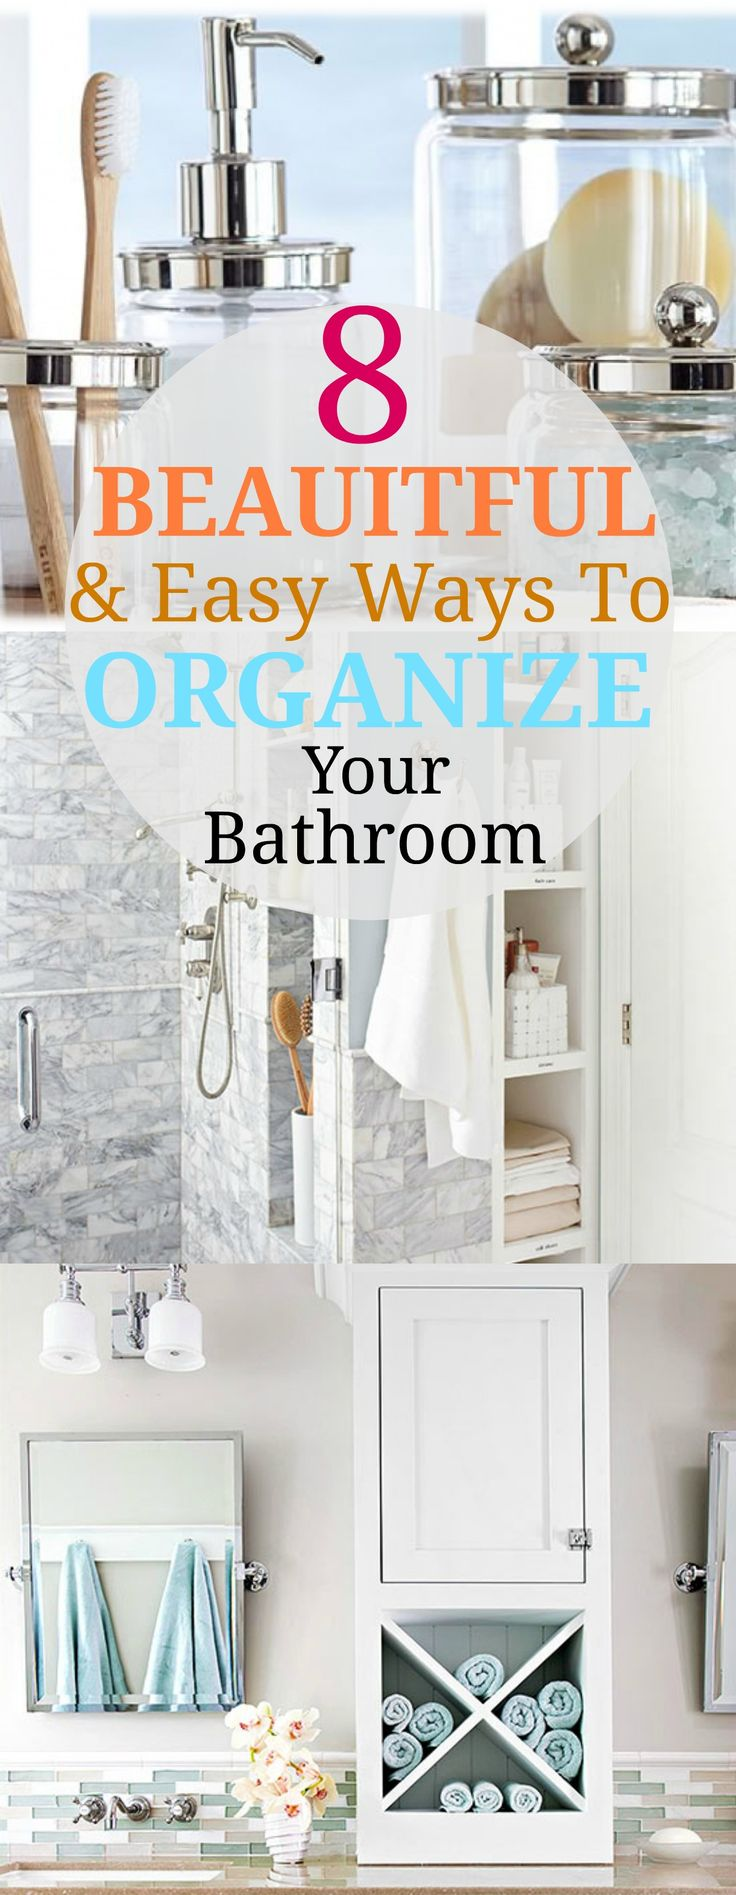 1453 best college dorm room inspiration images on - Cute ways to organize your bedroom ...